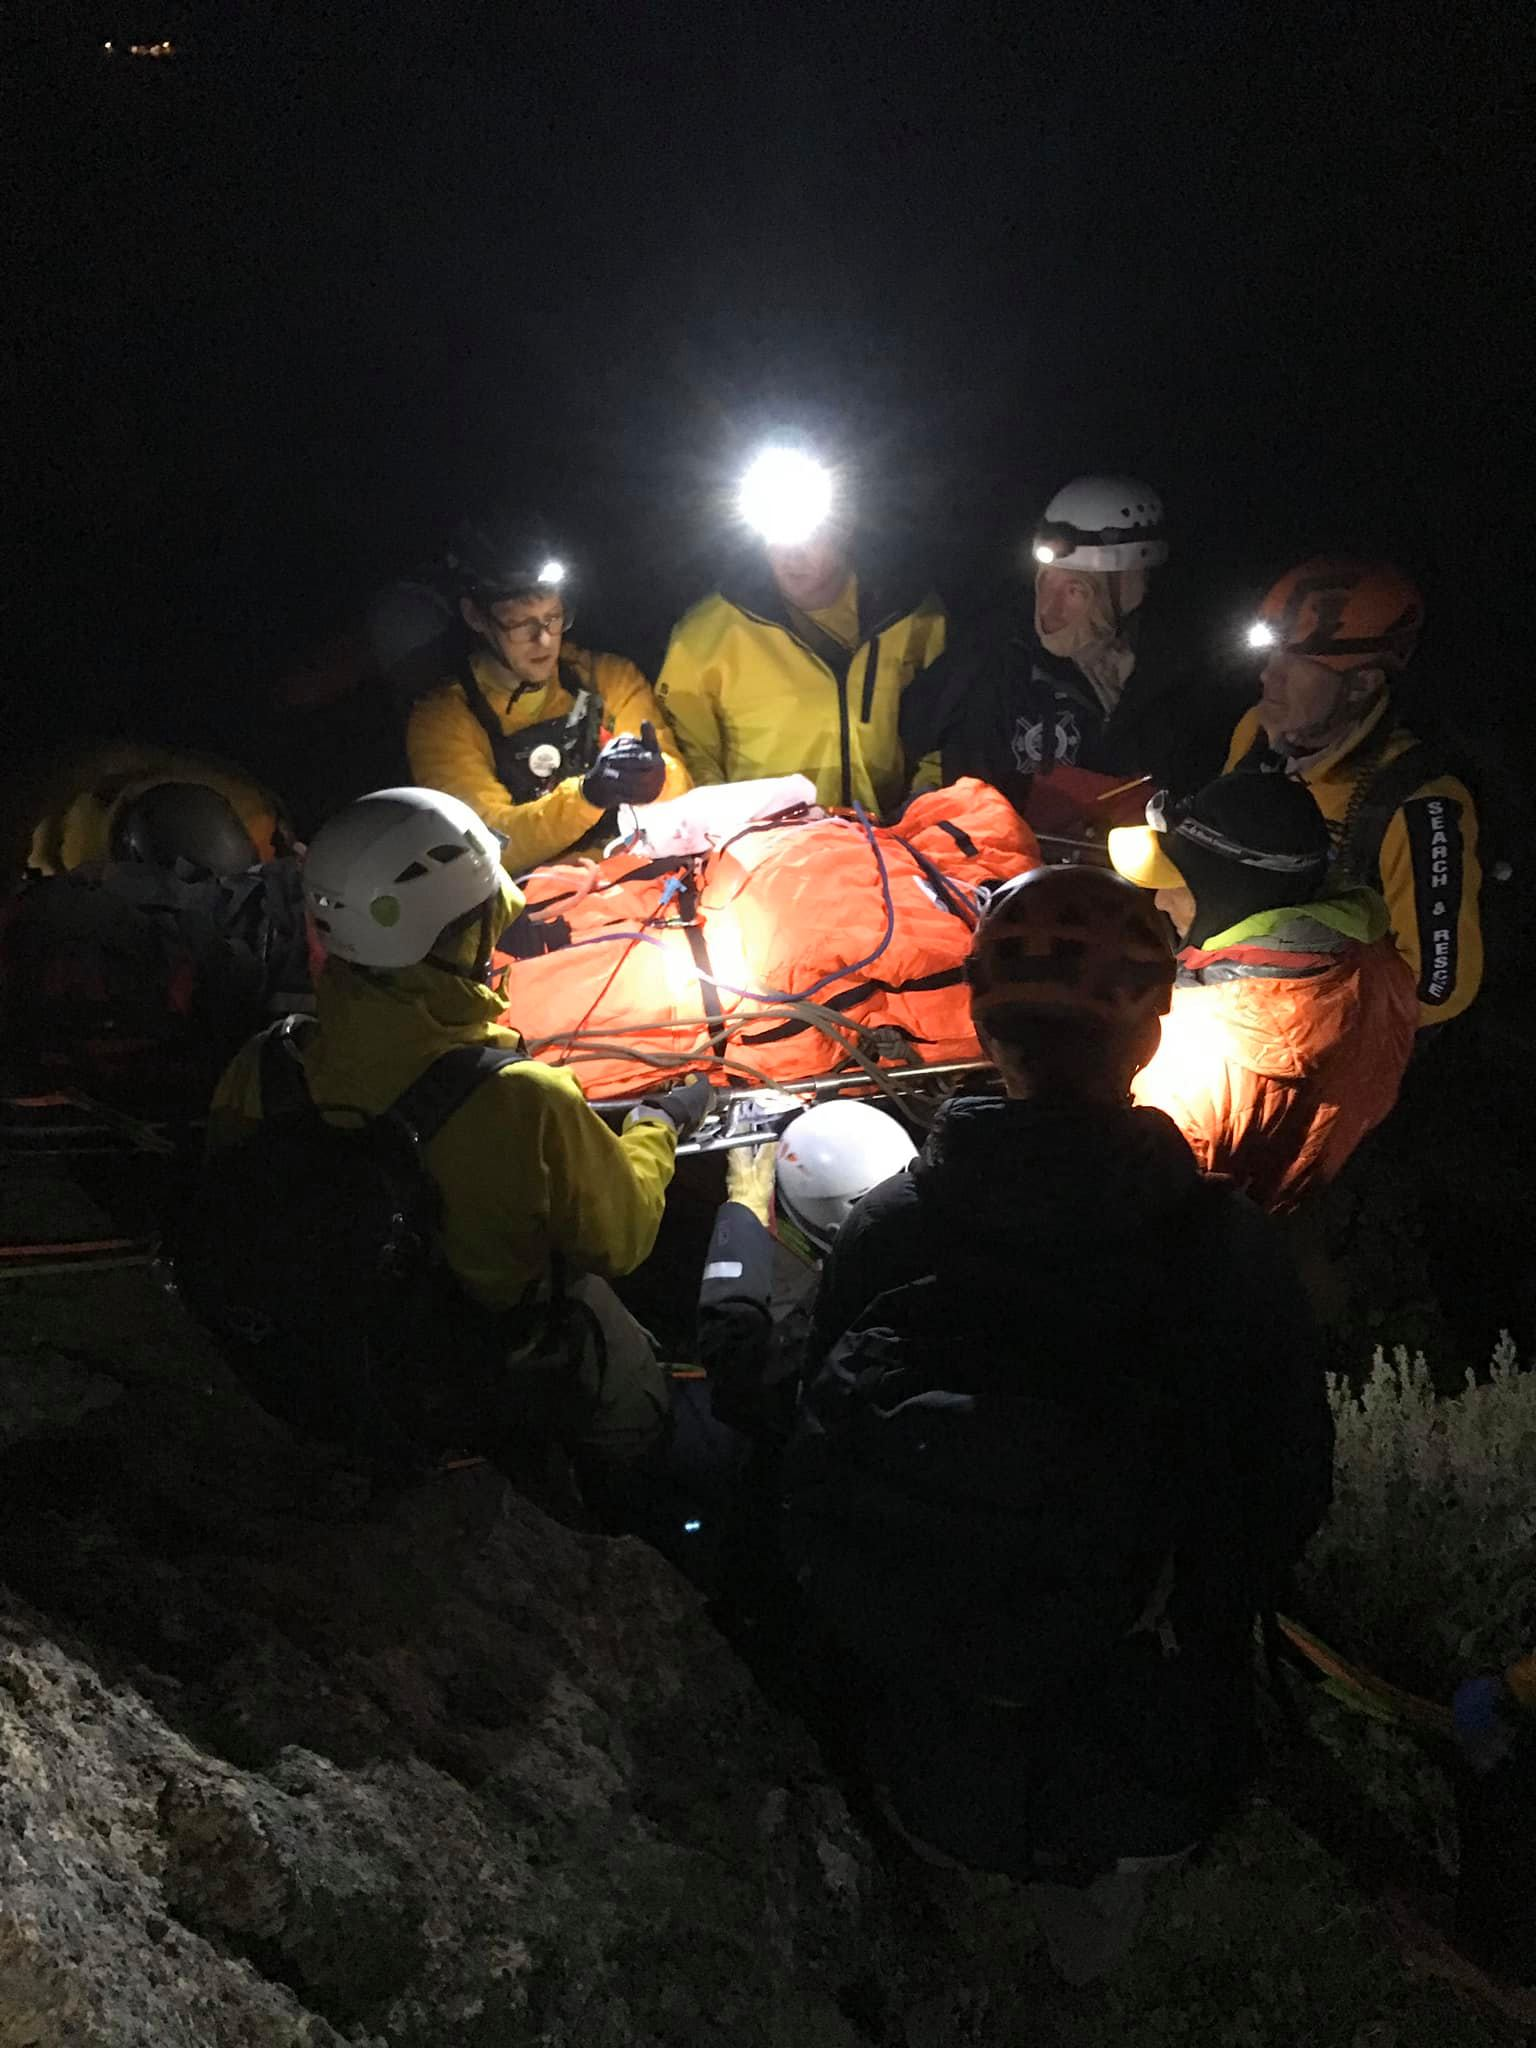 INJURED HIKER RESCUED AFTER LONG FALL AT SMITH ROCK STATE PARK